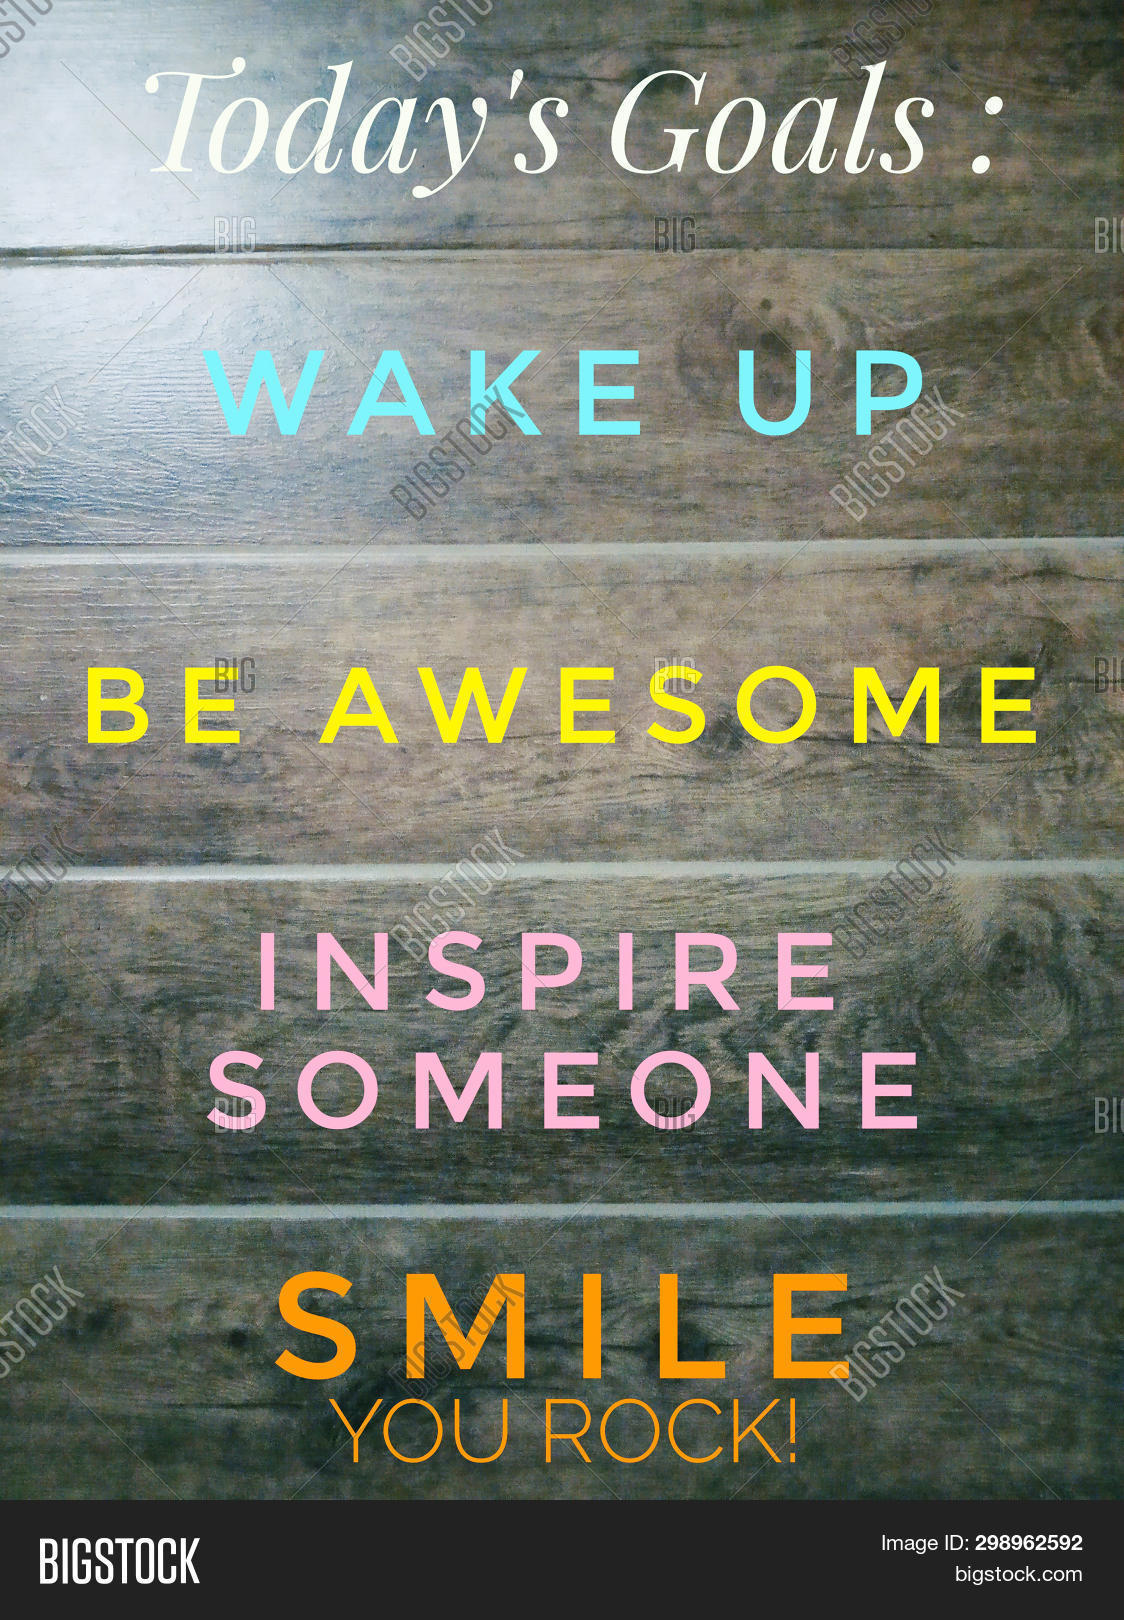 awesome,be,blue,board,challenge,color,colorful,day,font,goal,inspiration,inspire,inspired,joined,list,message,motivated,motivation,new,office,orange,pattern,pink,process,quote,read,reading,rock,saying,sign,smile,someone,success,symbol,target,text,texture,tile,today,up,wake,white,wisdom,wood,wooden,words,year,yellow,you